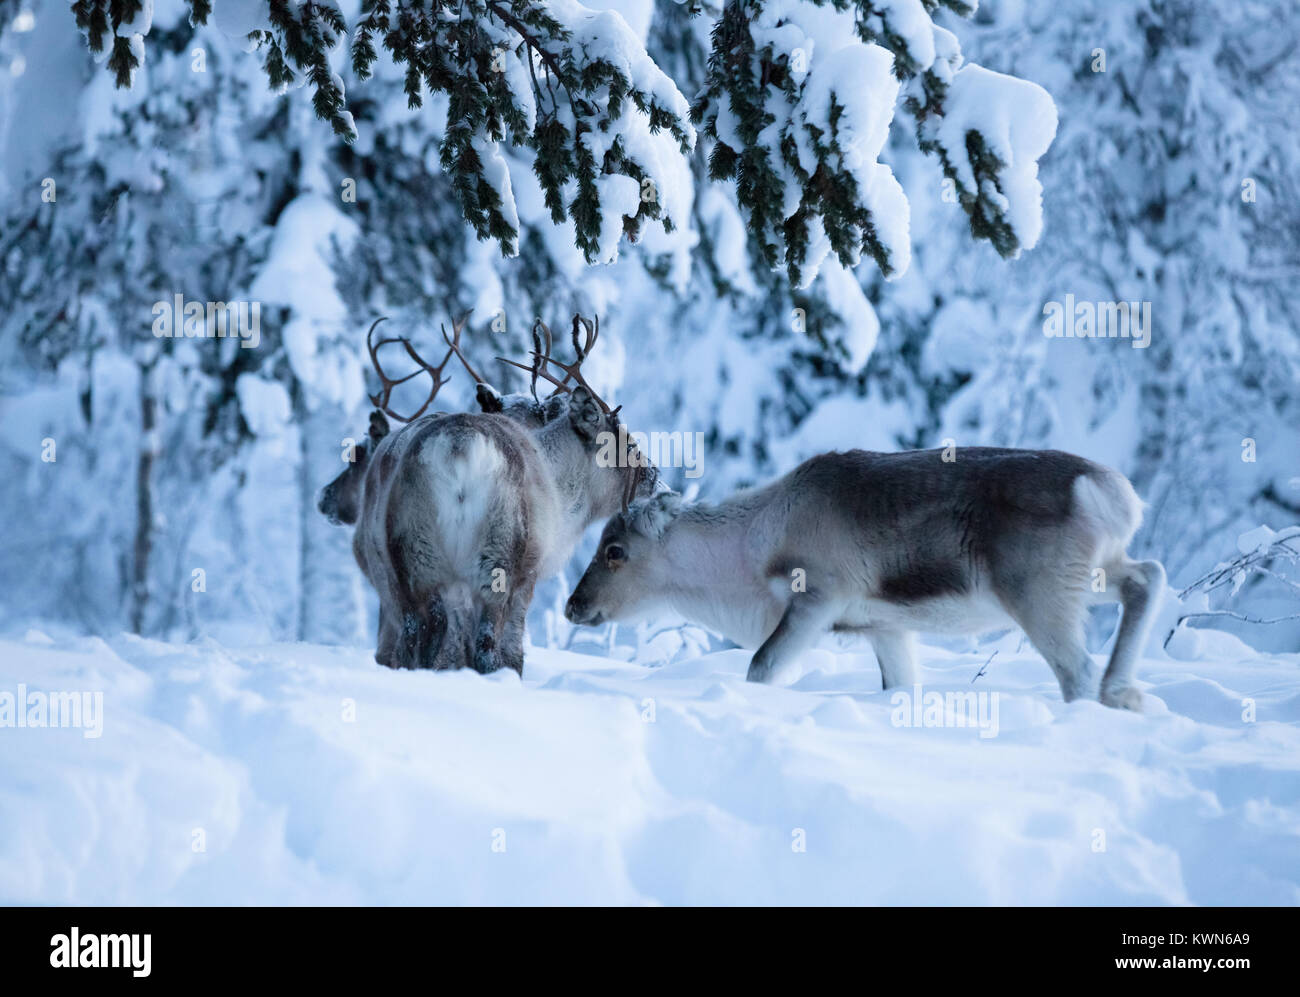 Reindeer in search for bait beneath the snow. Swedish Lapland. Stock Photo